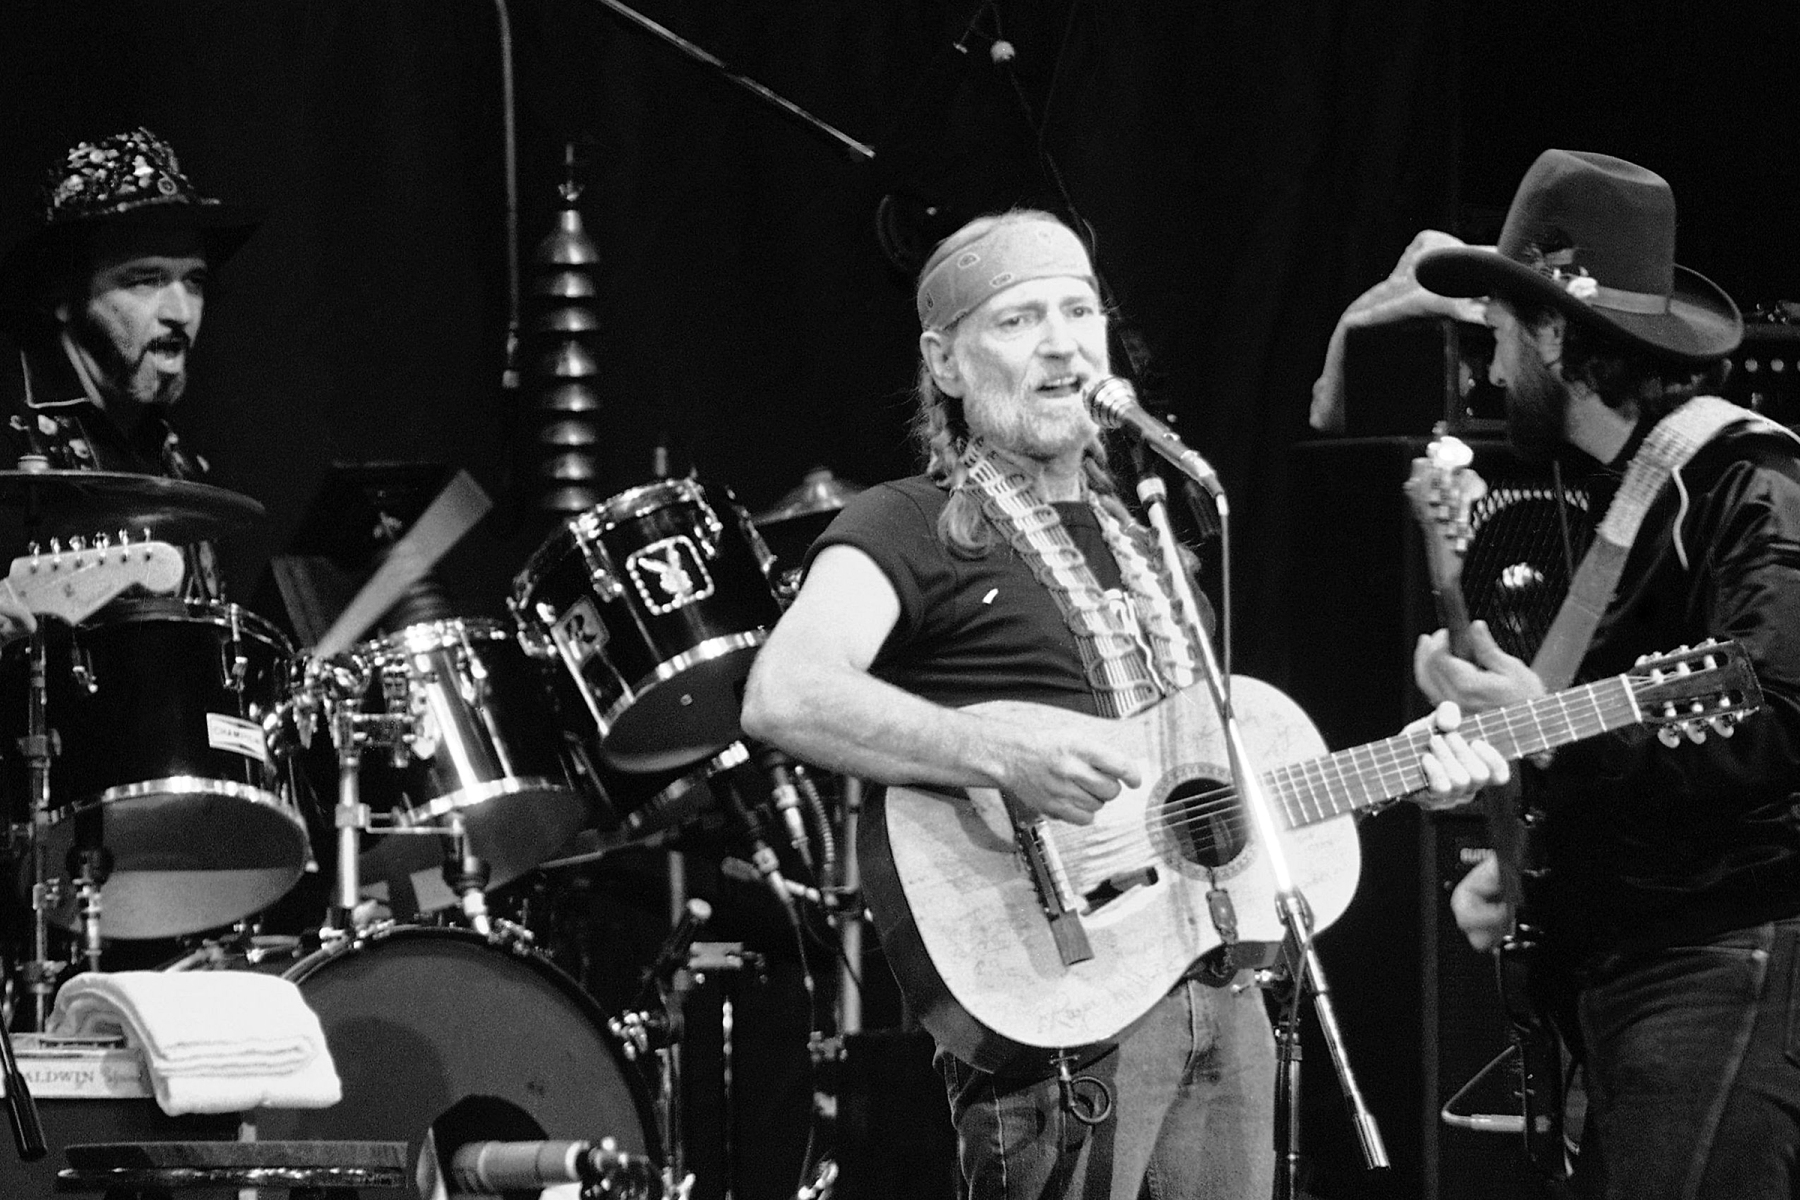 Willie Nelson American country-western singer Willie Nelson, center, sing a song during his first concert in Japan at the Budokan Hall in Tokyo, . On the road in Japan ? not again, but for the first time ? he plans to offer ?both standard and original jazz during a five-concert tour hereSinger Willie Nelson, Tokyo, Japan